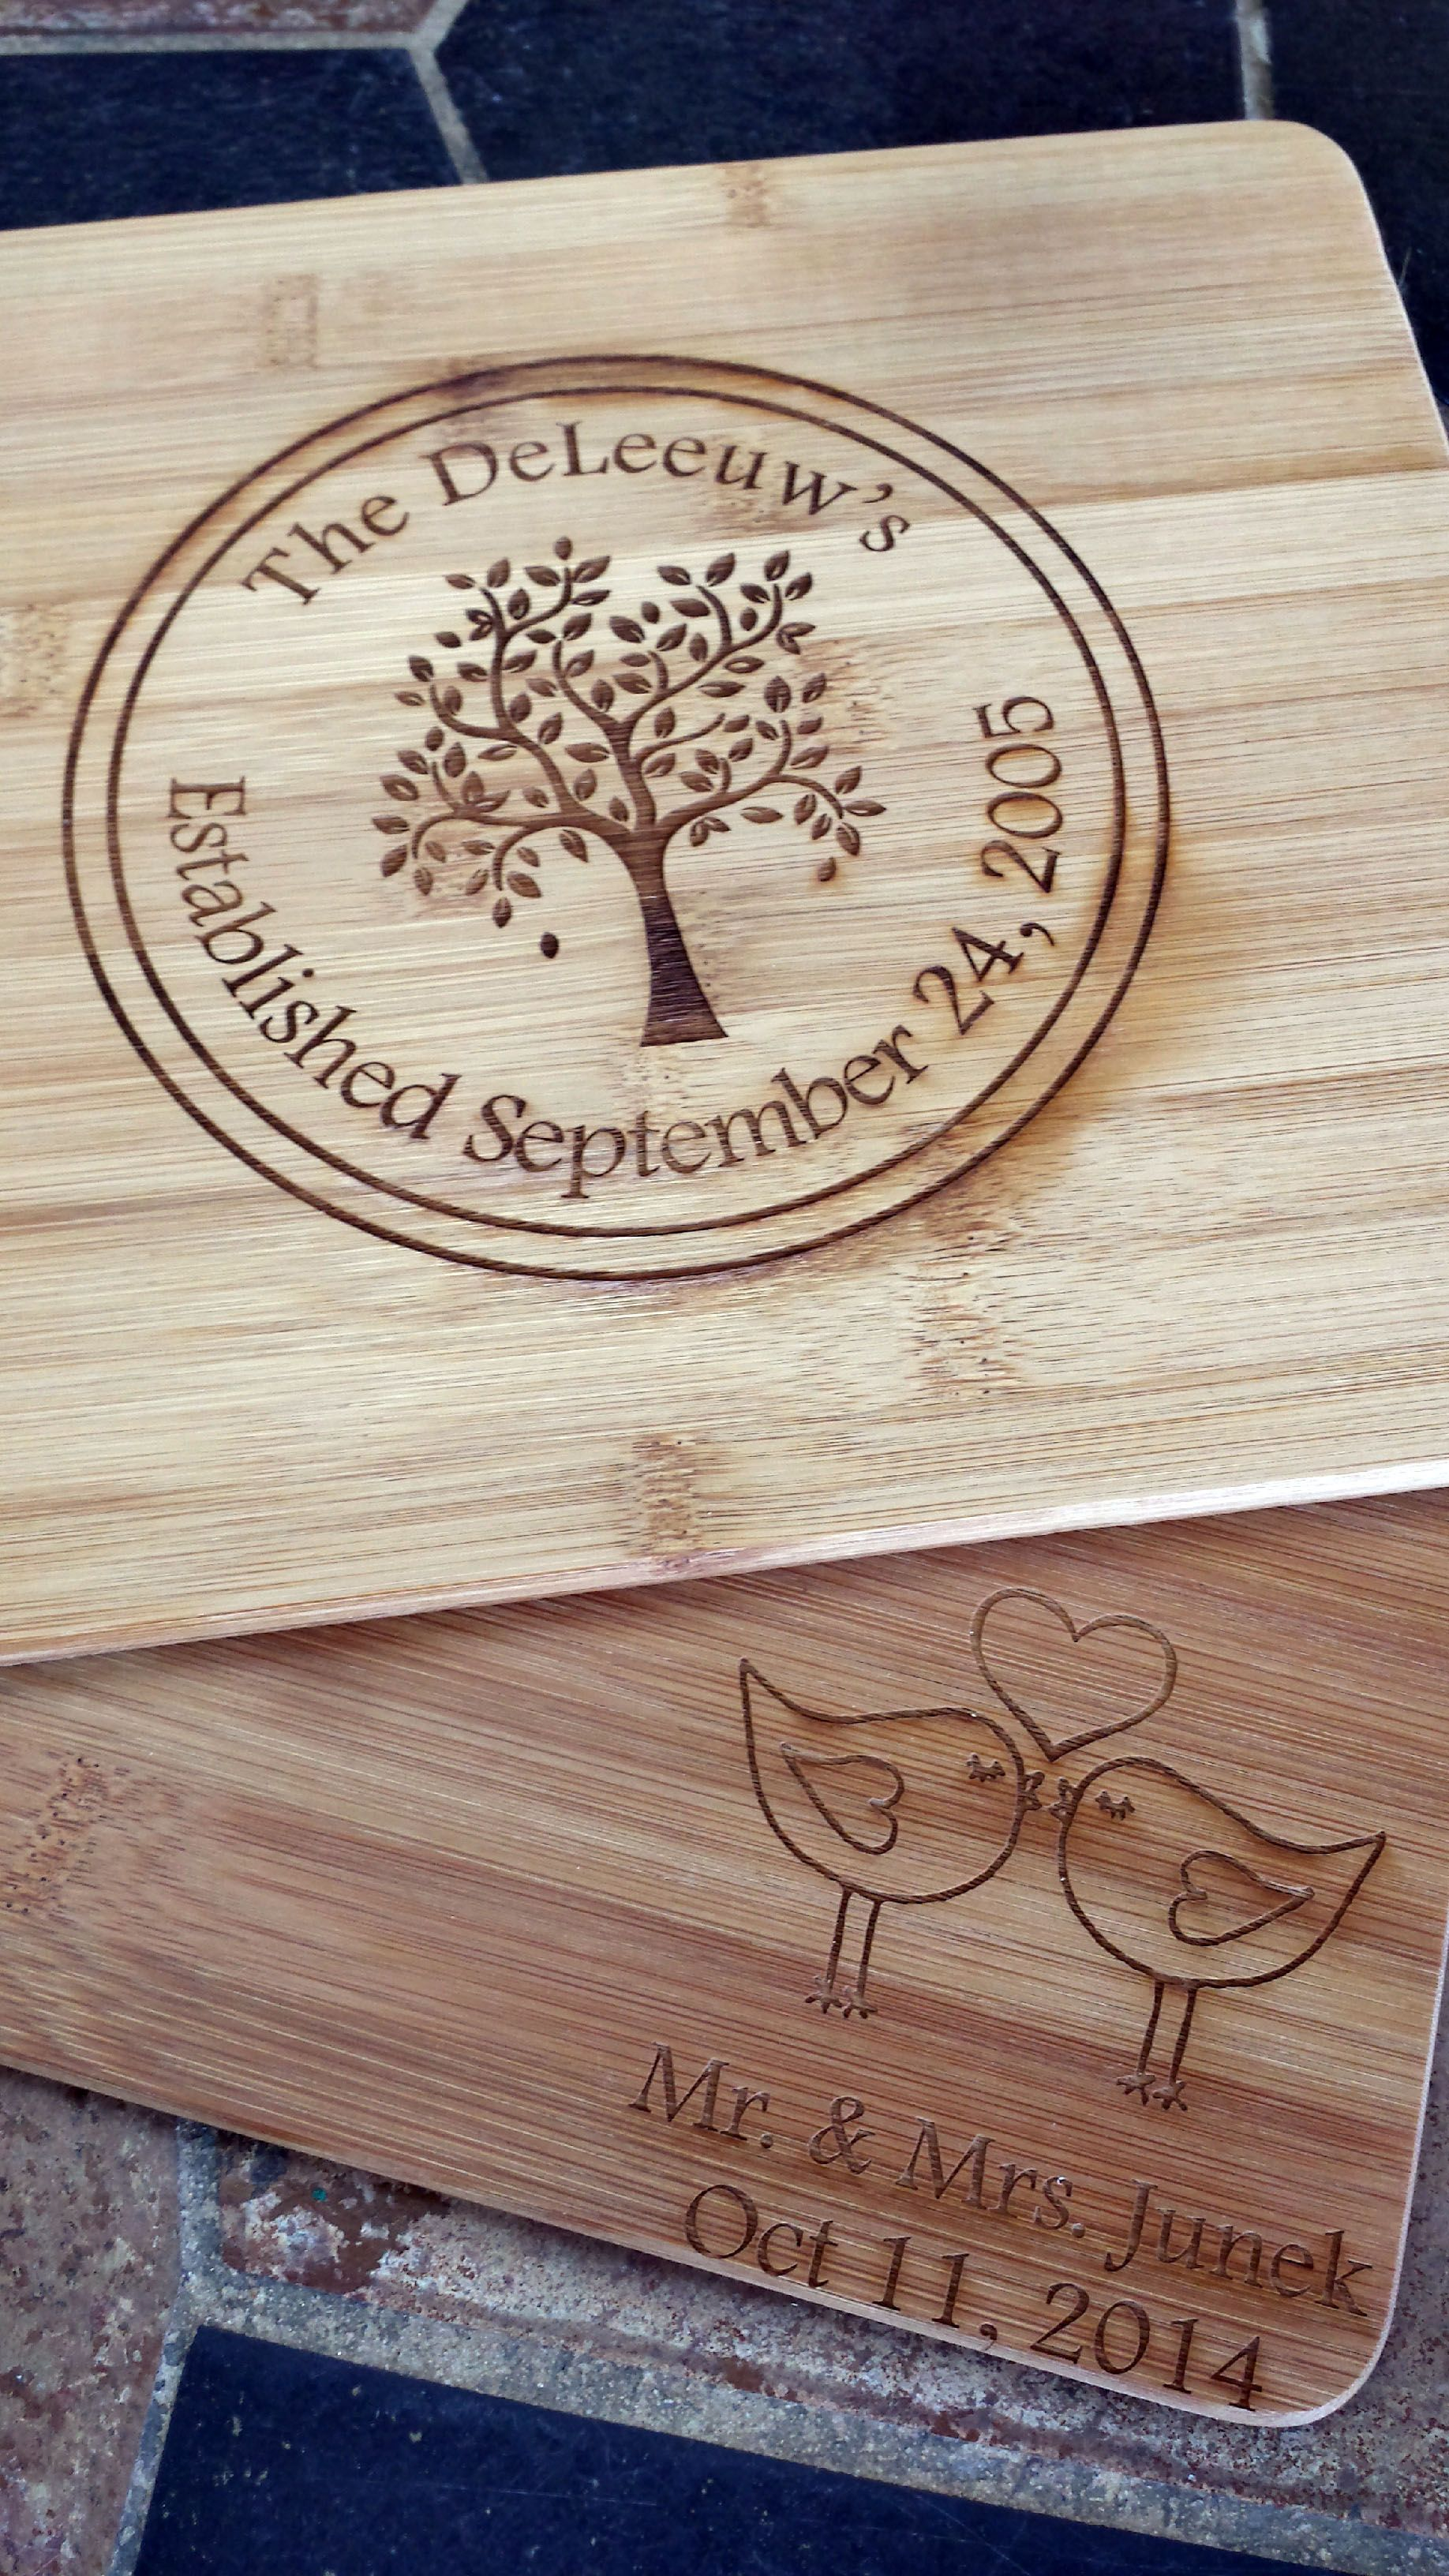 Personalized cutting boards make a wonderfully unique wedding gift!